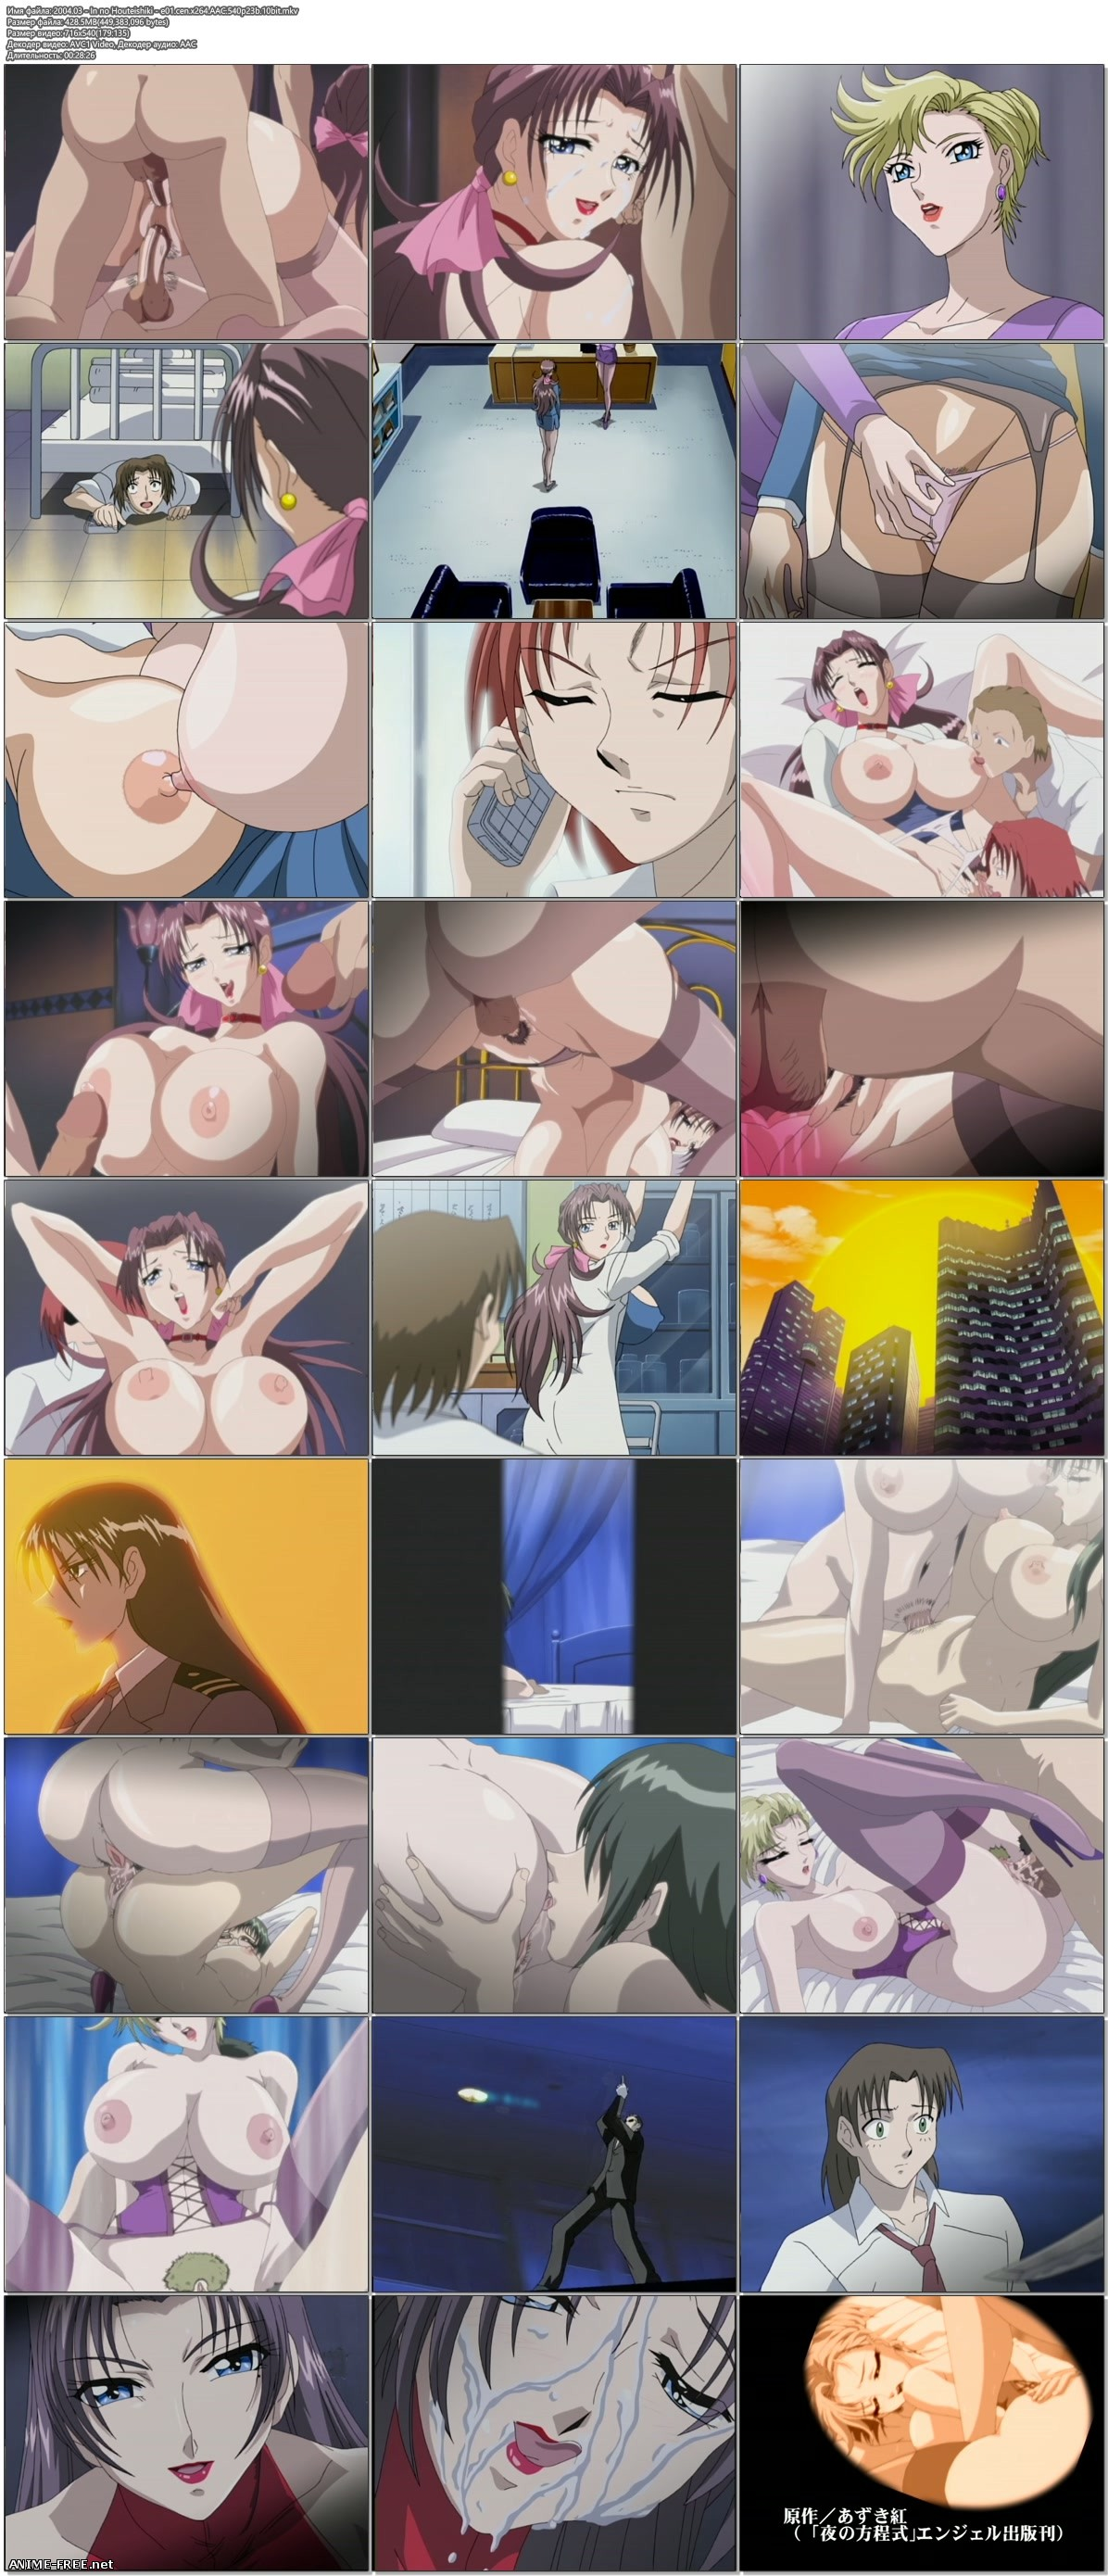 Immorality / In no Houteishiki / Уравнение безнравственности [2 из 2] [RUS,ENG,JAP] Anime Hentai